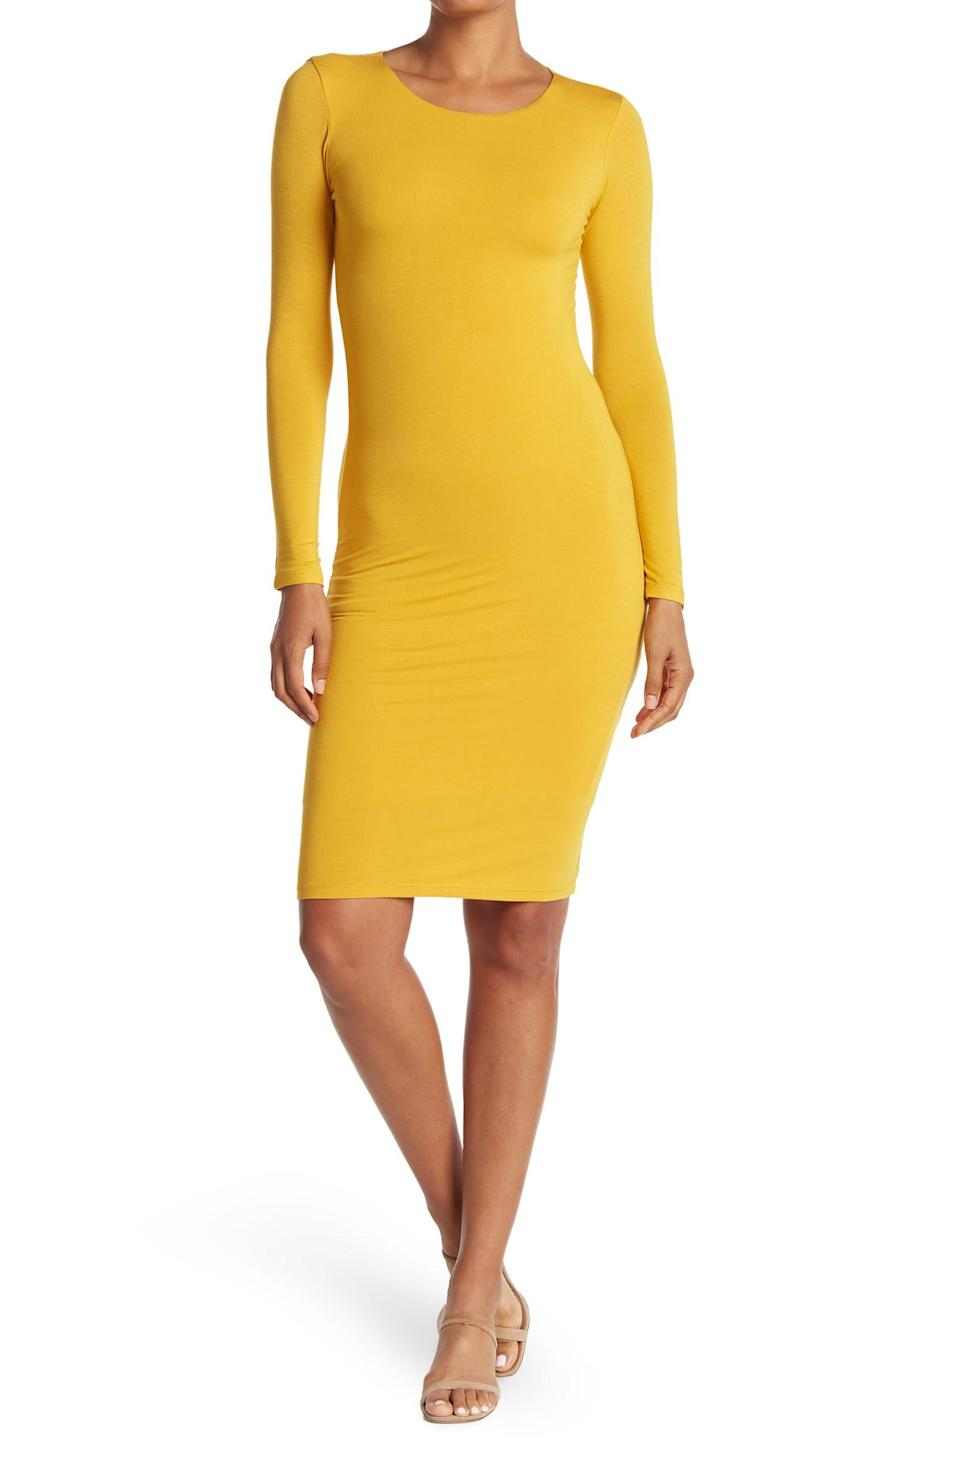 """<h2>Velvet Torch Long Sleeve Bodycon Midi Dress</h2><br>Reviewers love this super soft minimalist bodycon dress because it slips on like a second skin. And, if this bright mustard is a bit too bold for your taste, you can also get it in a fiery red, elegant black, or classic navy.<br><br><strong>The Hype: </strong>4.2 out of 5 stars and 59 reviews on <a href=""""https://www.nordstromrack.com/s/velvet-torch-long-sleeve-bodycon-midi-dress/6037238"""" rel=""""nofollow noopener"""" target=""""_blank"""" data-ylk=""""slk:NordstromRack.com"""" class=""""link rapid-noclick-resp"""">NordstromRack.com</a><br><br><strong>What They're Saying: </strong>""""A great dress, especially for the price I paid. Nice and sleek, form-fitting but not a girdle. Perfect color and silhouette. A very versatile dress that could be used for day and could also be a knockout at night with the right accessories. Fabric is nice and stretchy and looks good on. Length is just right. I've been looking for a dress like this for a long time. I couldn't believe I got it for the price I paid!"""" — mkmiraglia, NordstromRack.com reviewer<br><br><strong>Velvet Torch</strong> Long Sleeve Bodycon Midi Dress, $, available at <a href=""""https://go.skimresources.com/?id=30283X879131&url=https%3A%2F%2Fwww.nordstromrack.com%2Fs%2Fvelvet-torch-long-sleeve-bodycon-midi-dress%2F6037238"""" rel=""""nofollow noopener"""" target=""""_blank"""" data-ylk=""""slk:Nordstrom Rack"""" class=""""link rapid-noclick-resp"""">Nordstrom Rack</a>"""